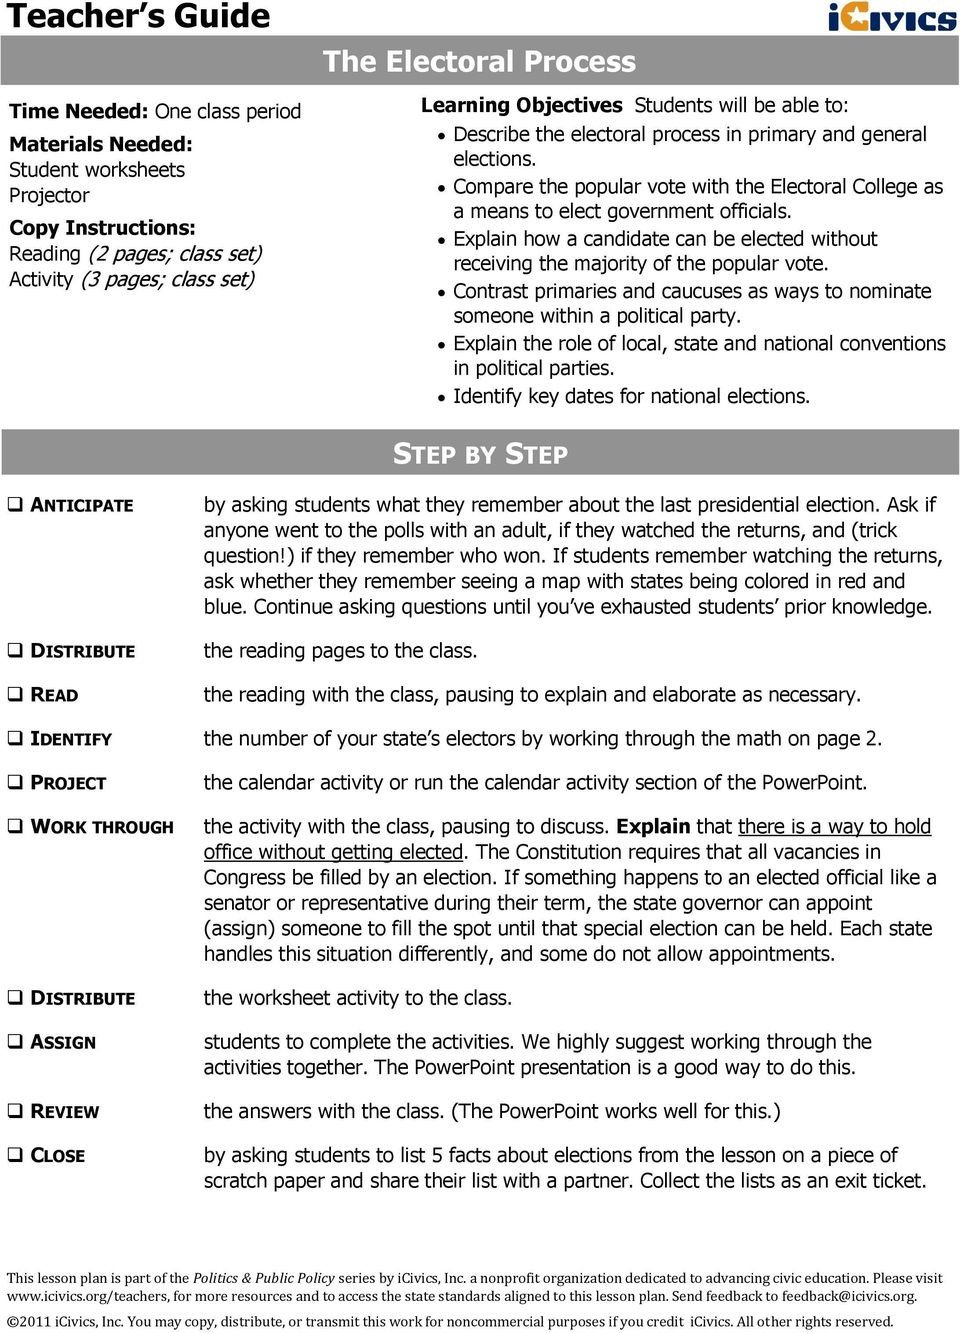 Election Worksheets for Elementary Students the Electoral Process Step by Step the Worksheet Activity